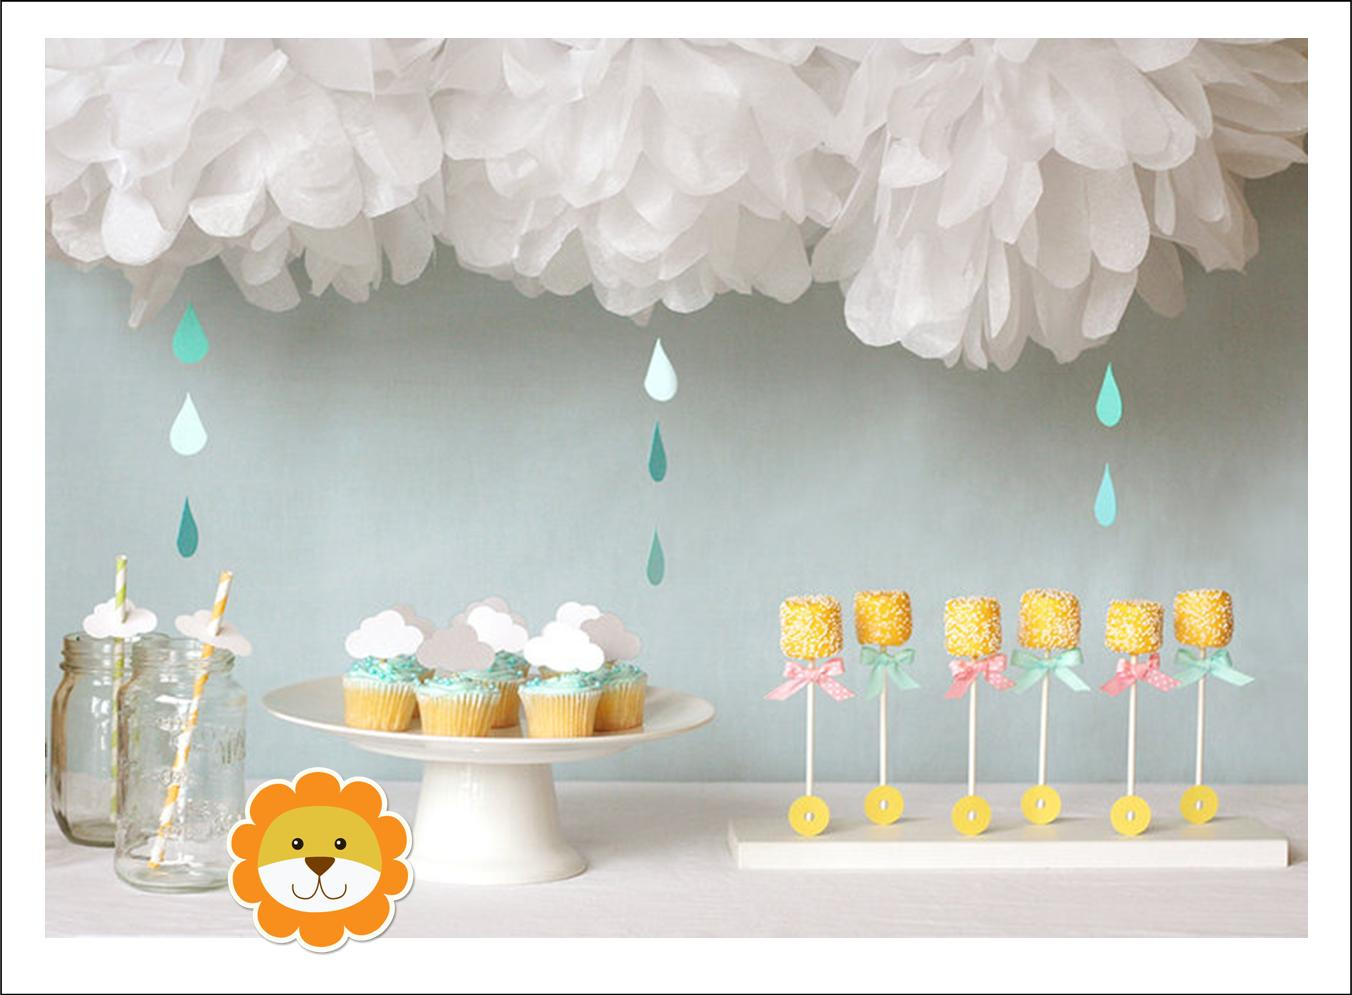 It 39 s written on the wall baby shower treats party favors cakes and decorations so much fun - Decoration baby shower fait maison ...